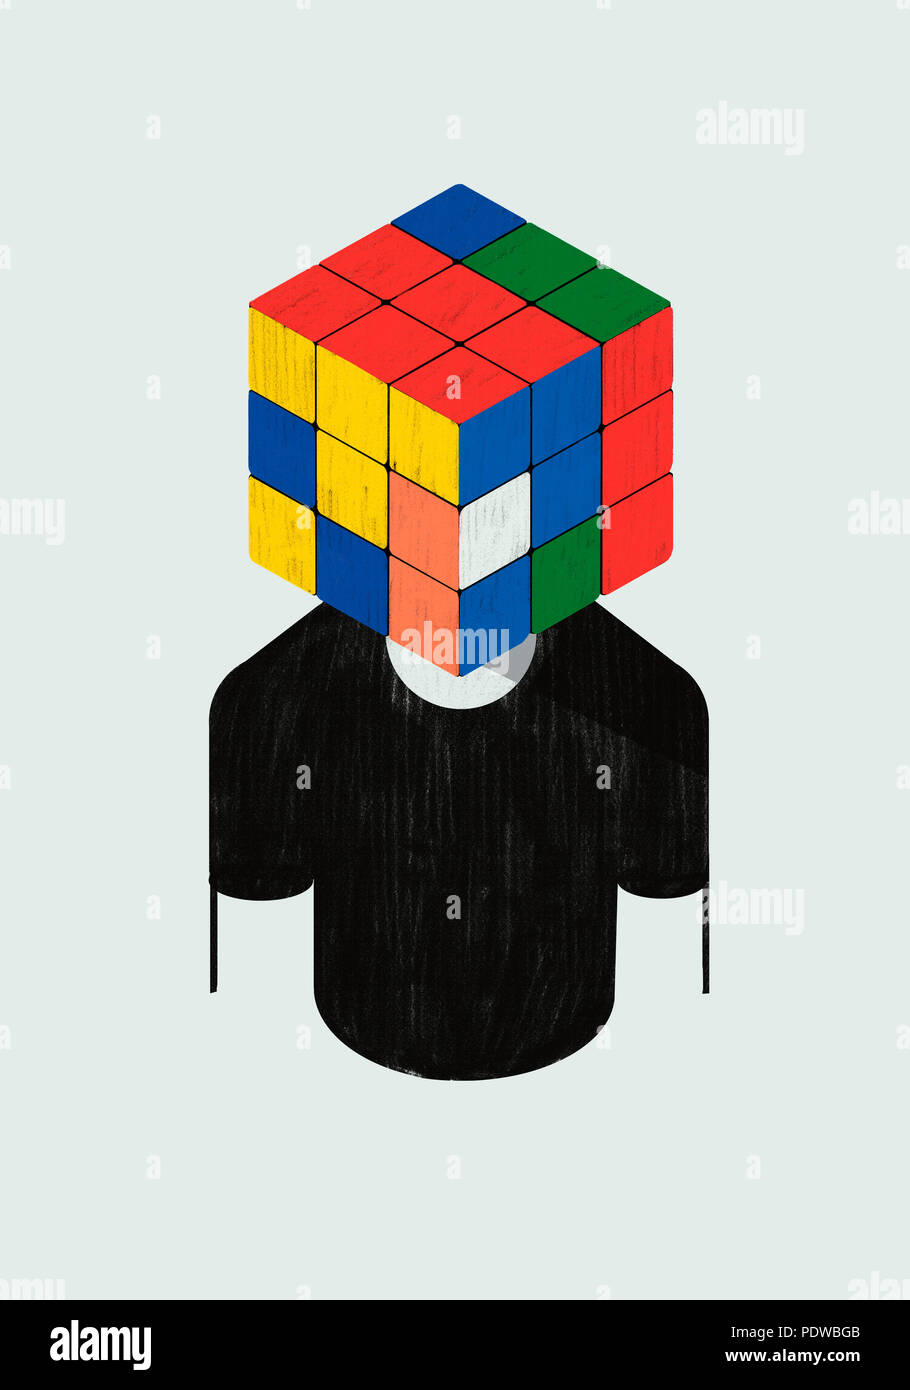 Psychology. Concept. Mind as a Rubik cube colorful metaphor. - Stock Image